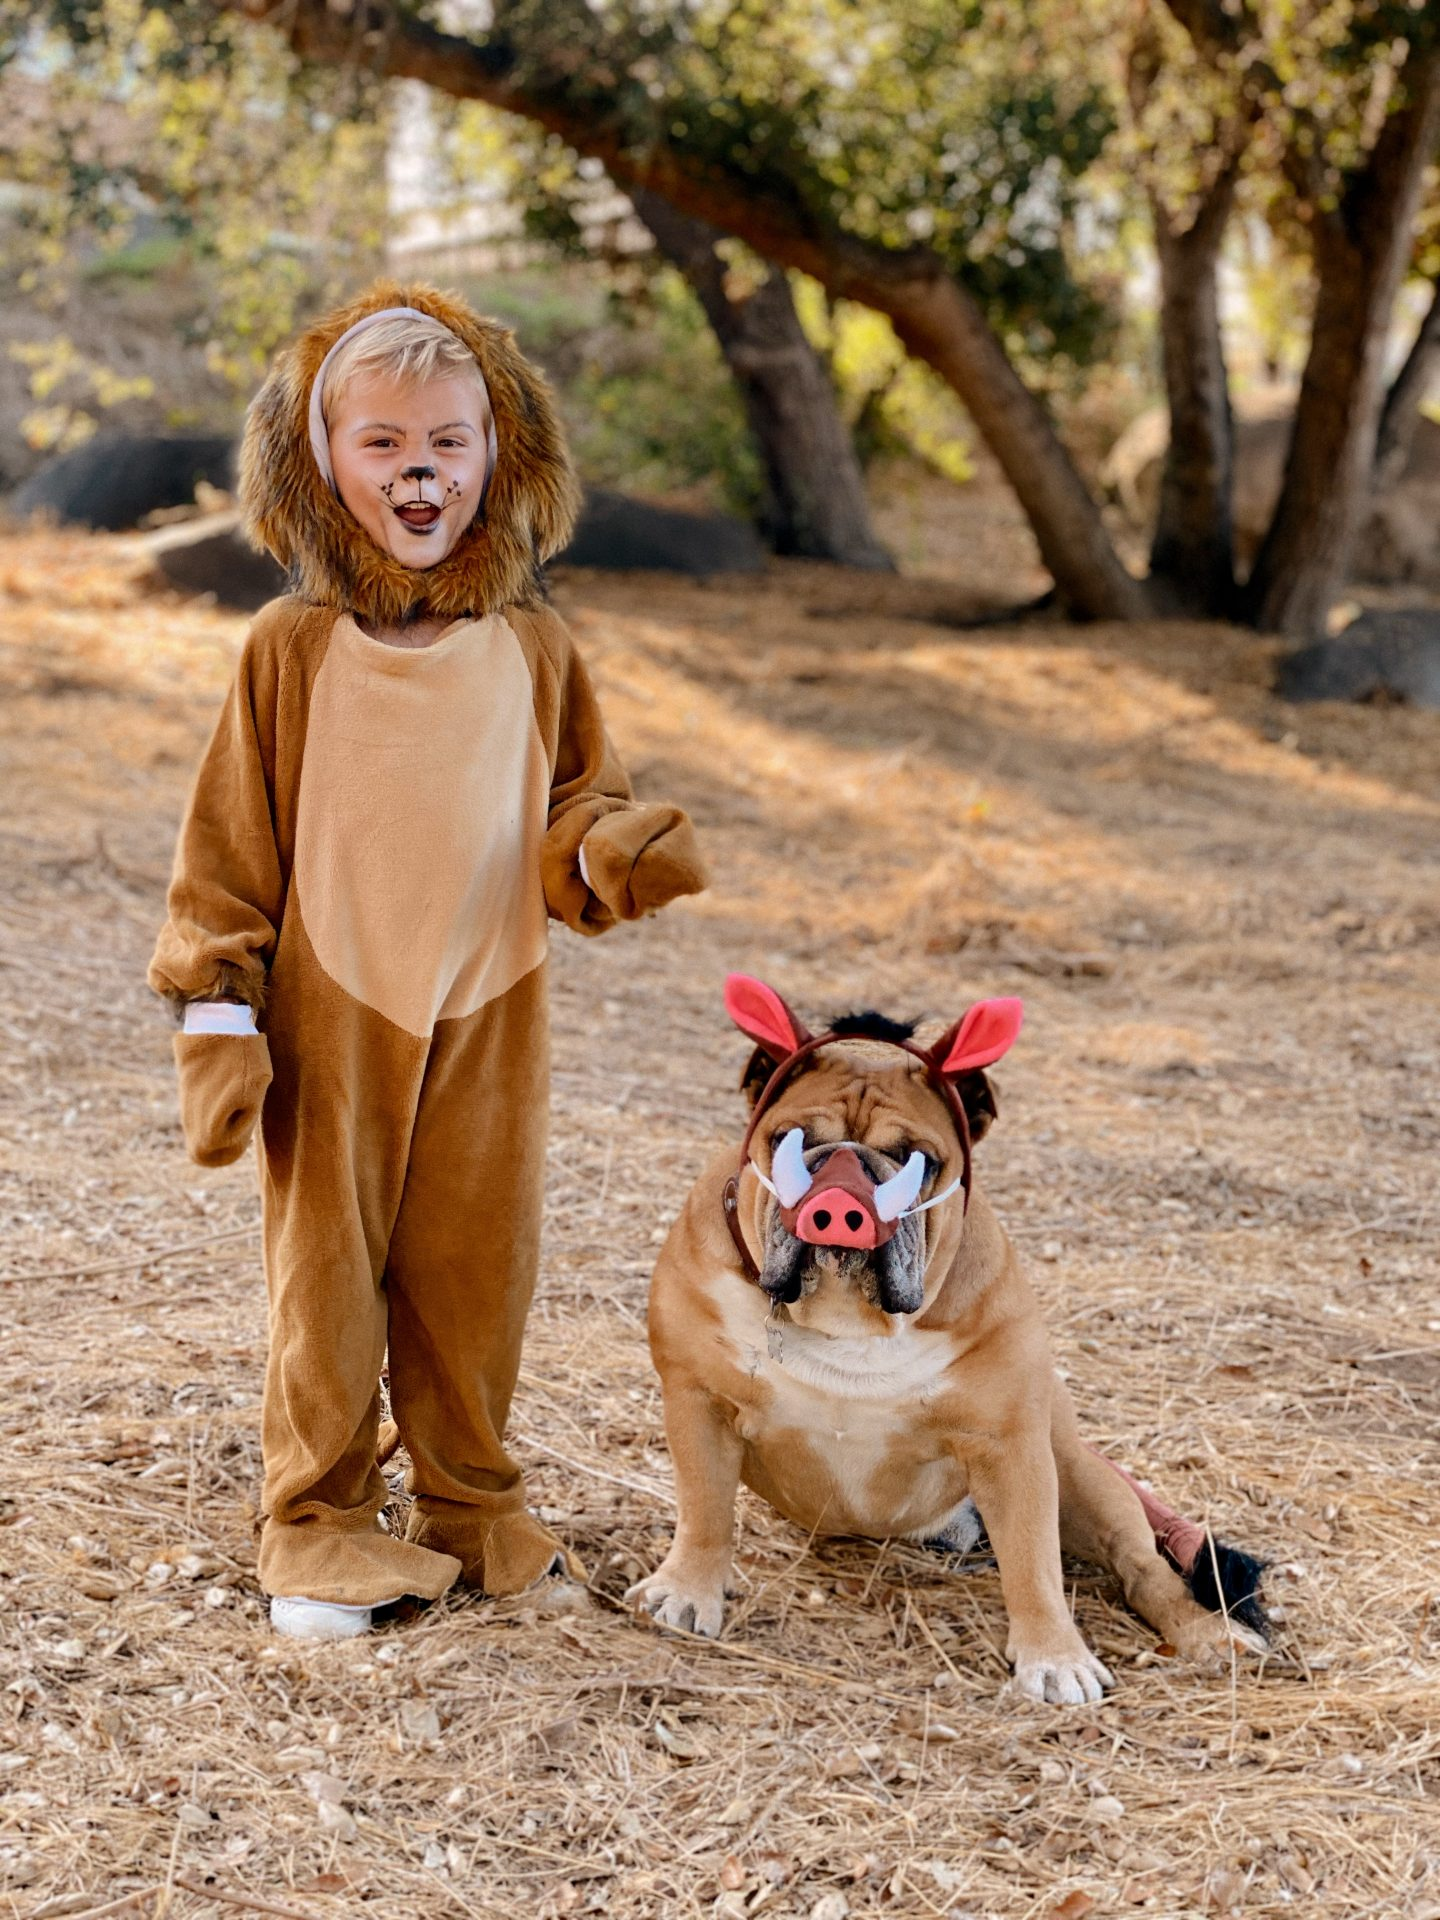 Family Halloween Costumes by popular San Diego lifestyle blog, Navy Grace: image of a boy dressed up as Simba and his dog dressed up as Pumba from The Lion King.